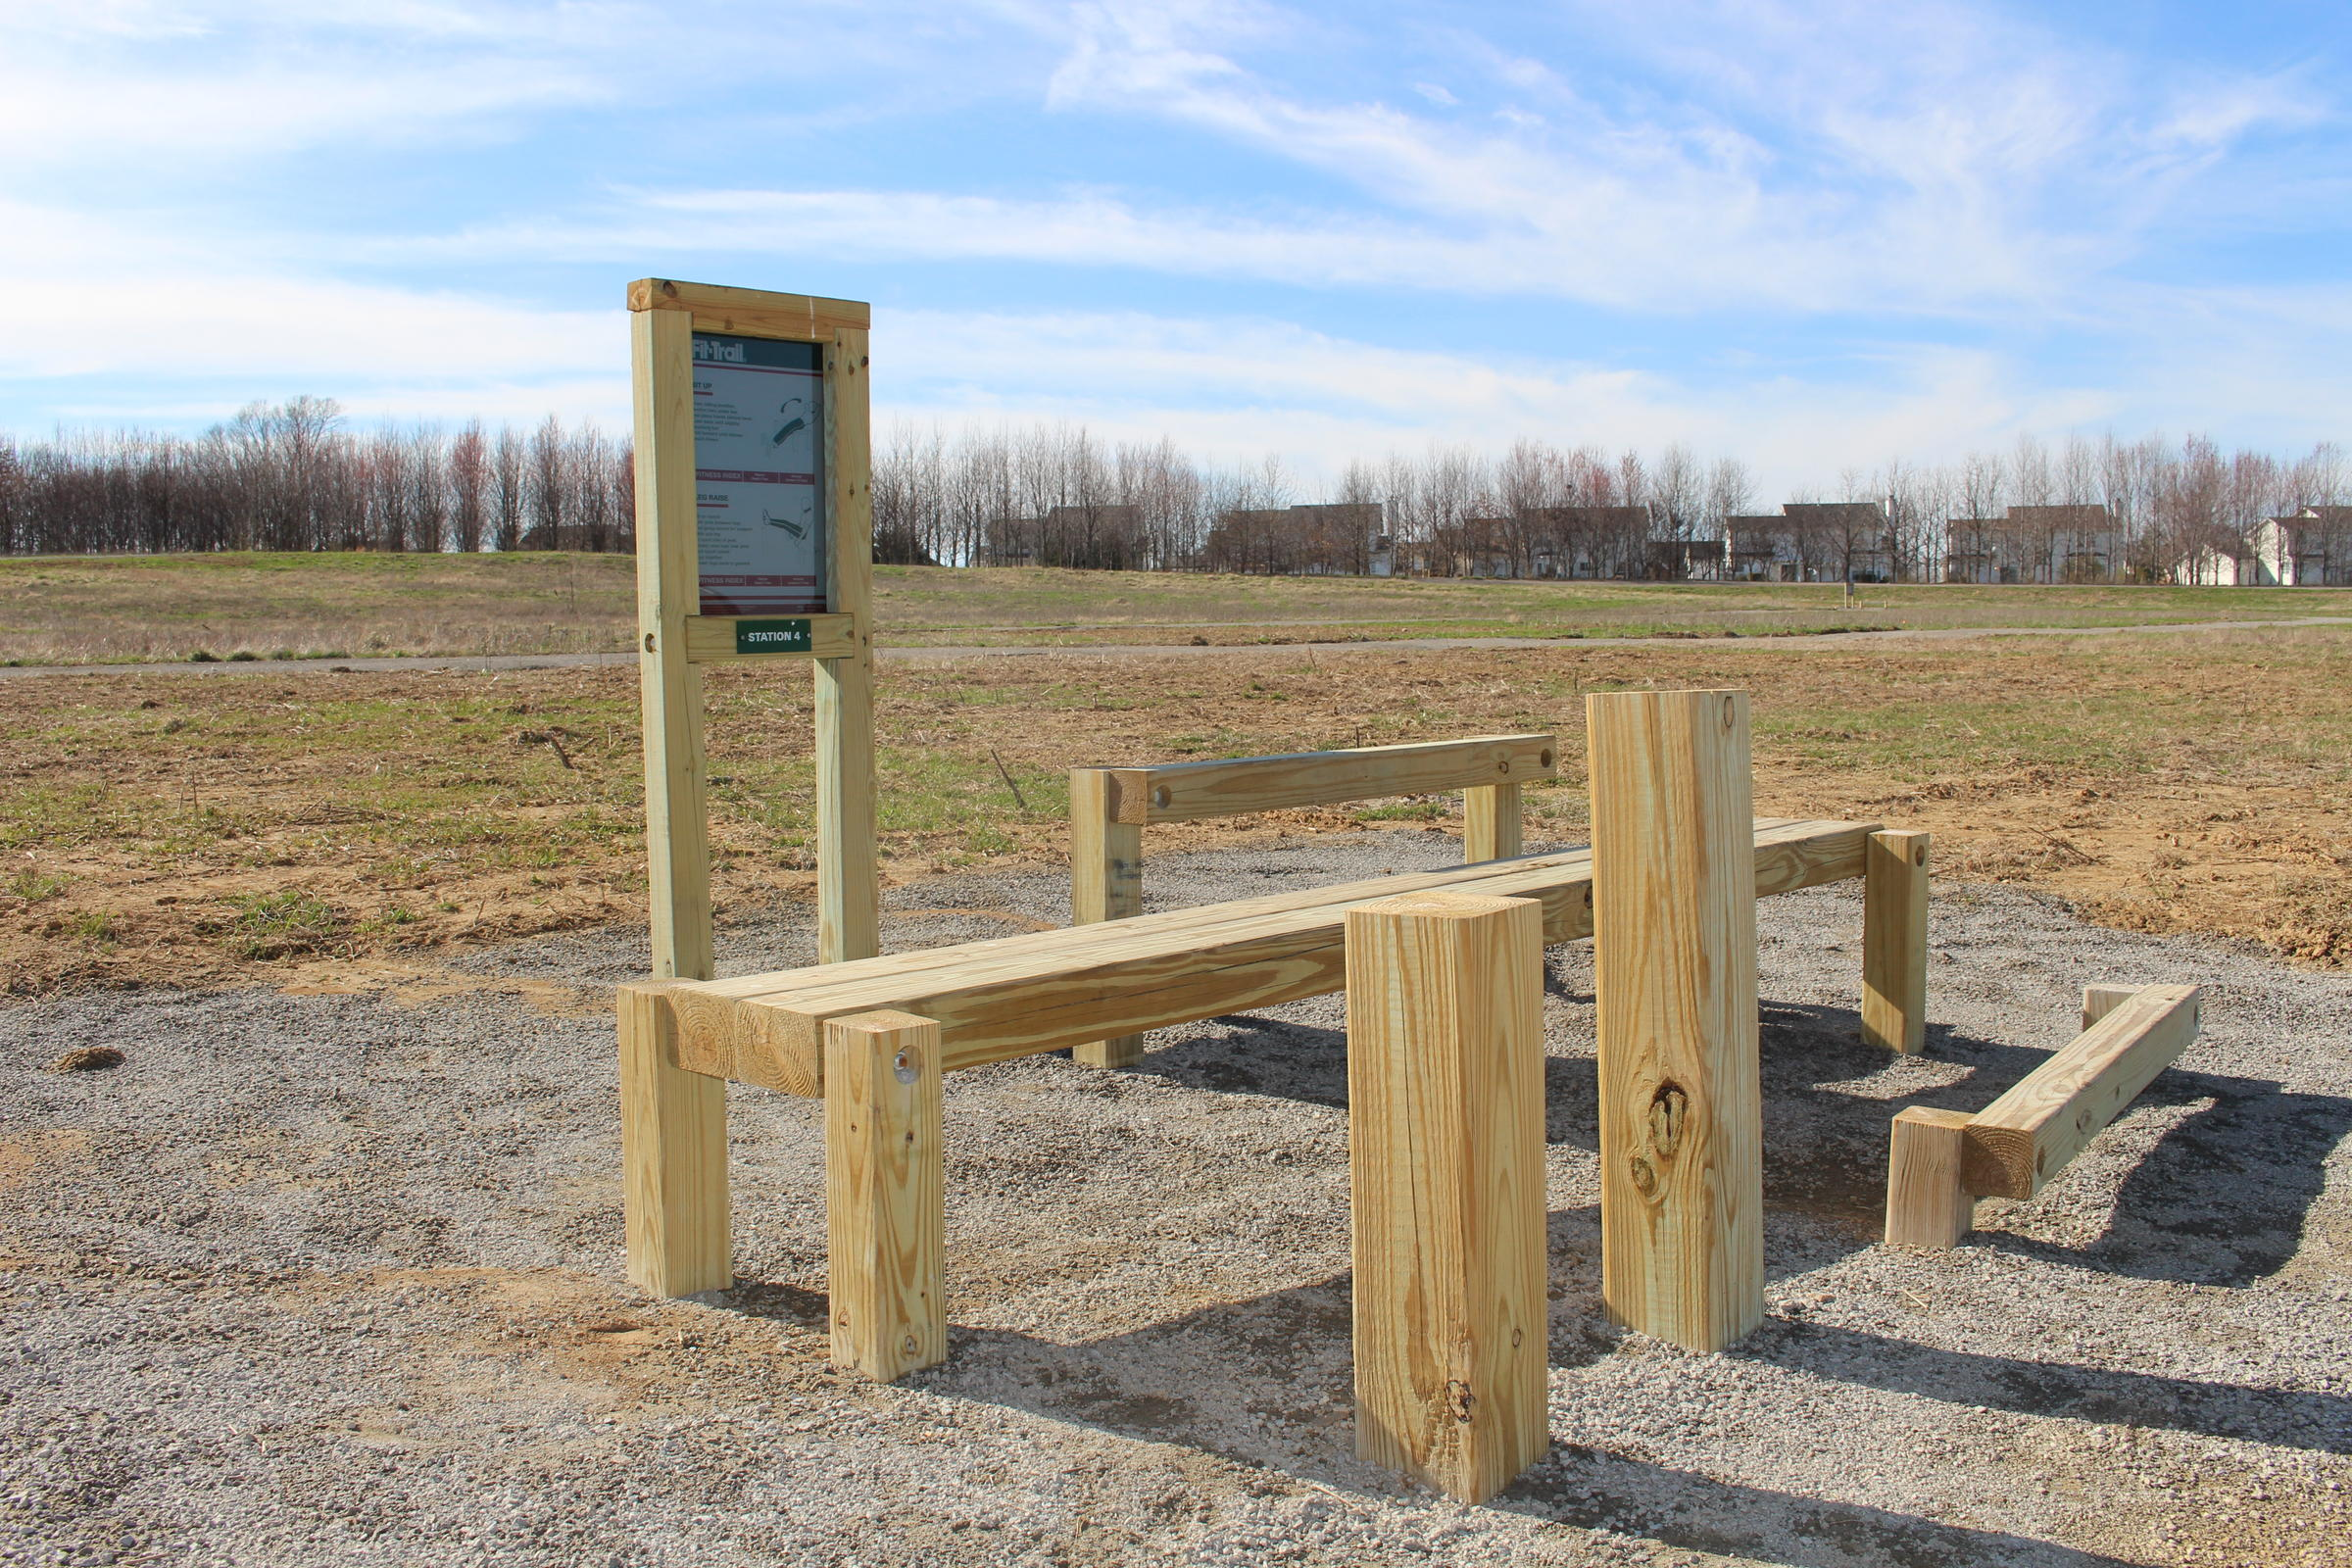 new parks feature lake in chesterfield accessibility in st charles county st louis public radio. Black Bedroom Furniture Sets. Home Design Ideas